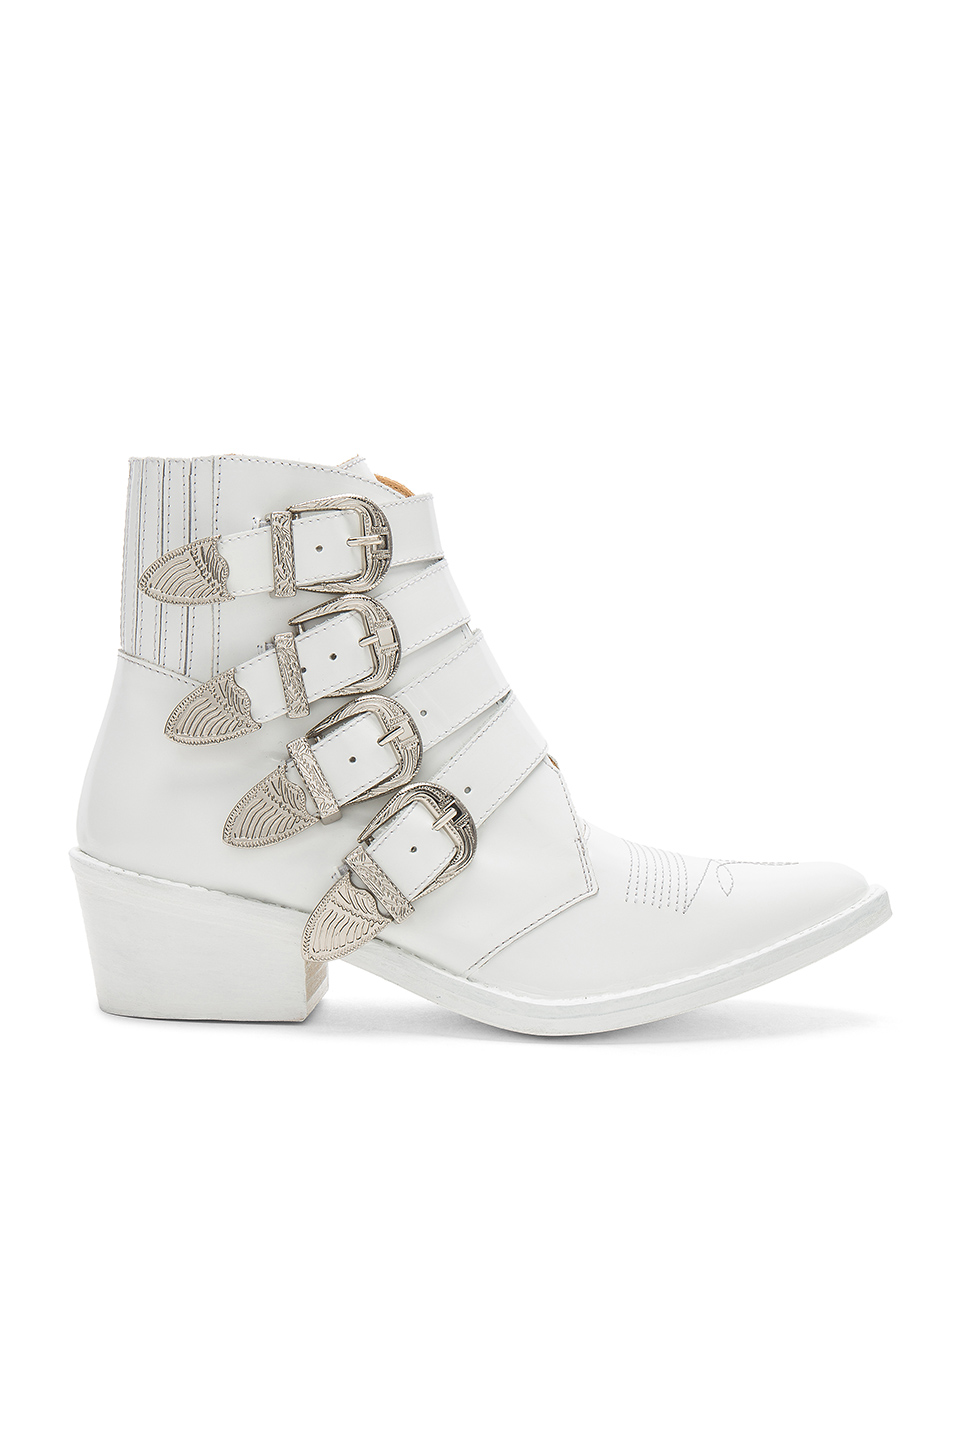 TOGA PULLA Western Buckle Bootie in White Polido